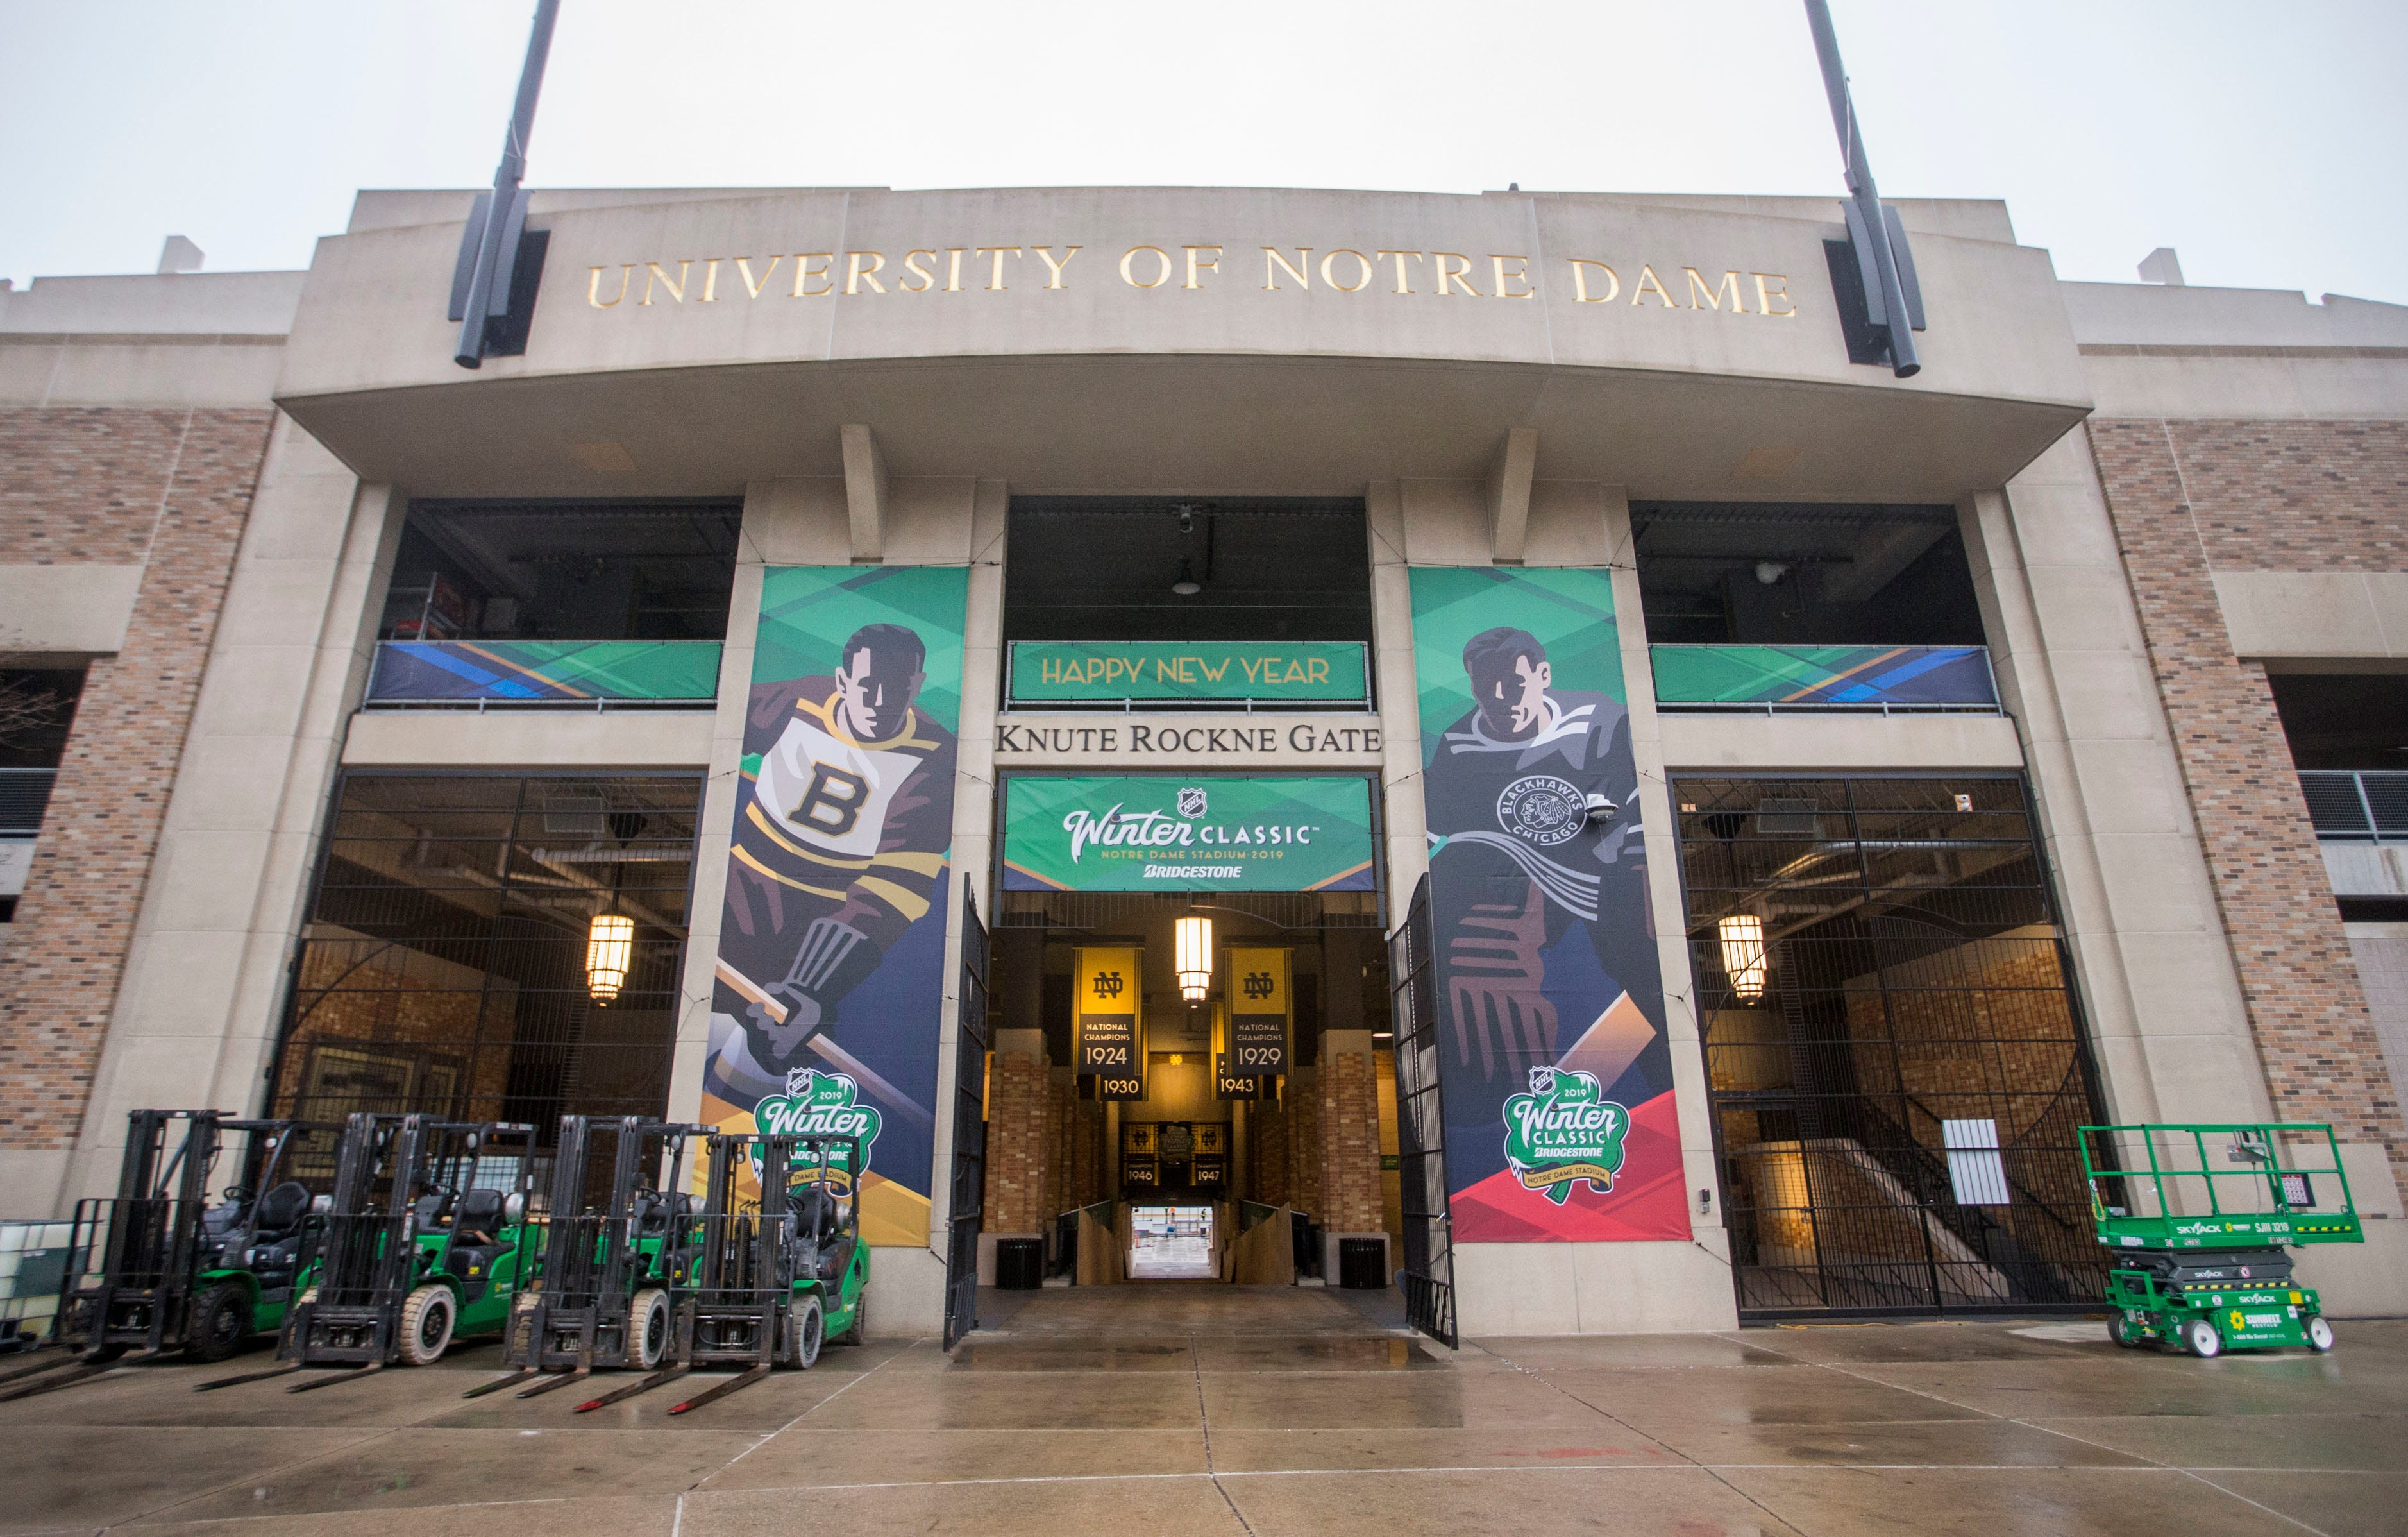 Blackhawks take on Bruins in Winter Classic at Notre Dame